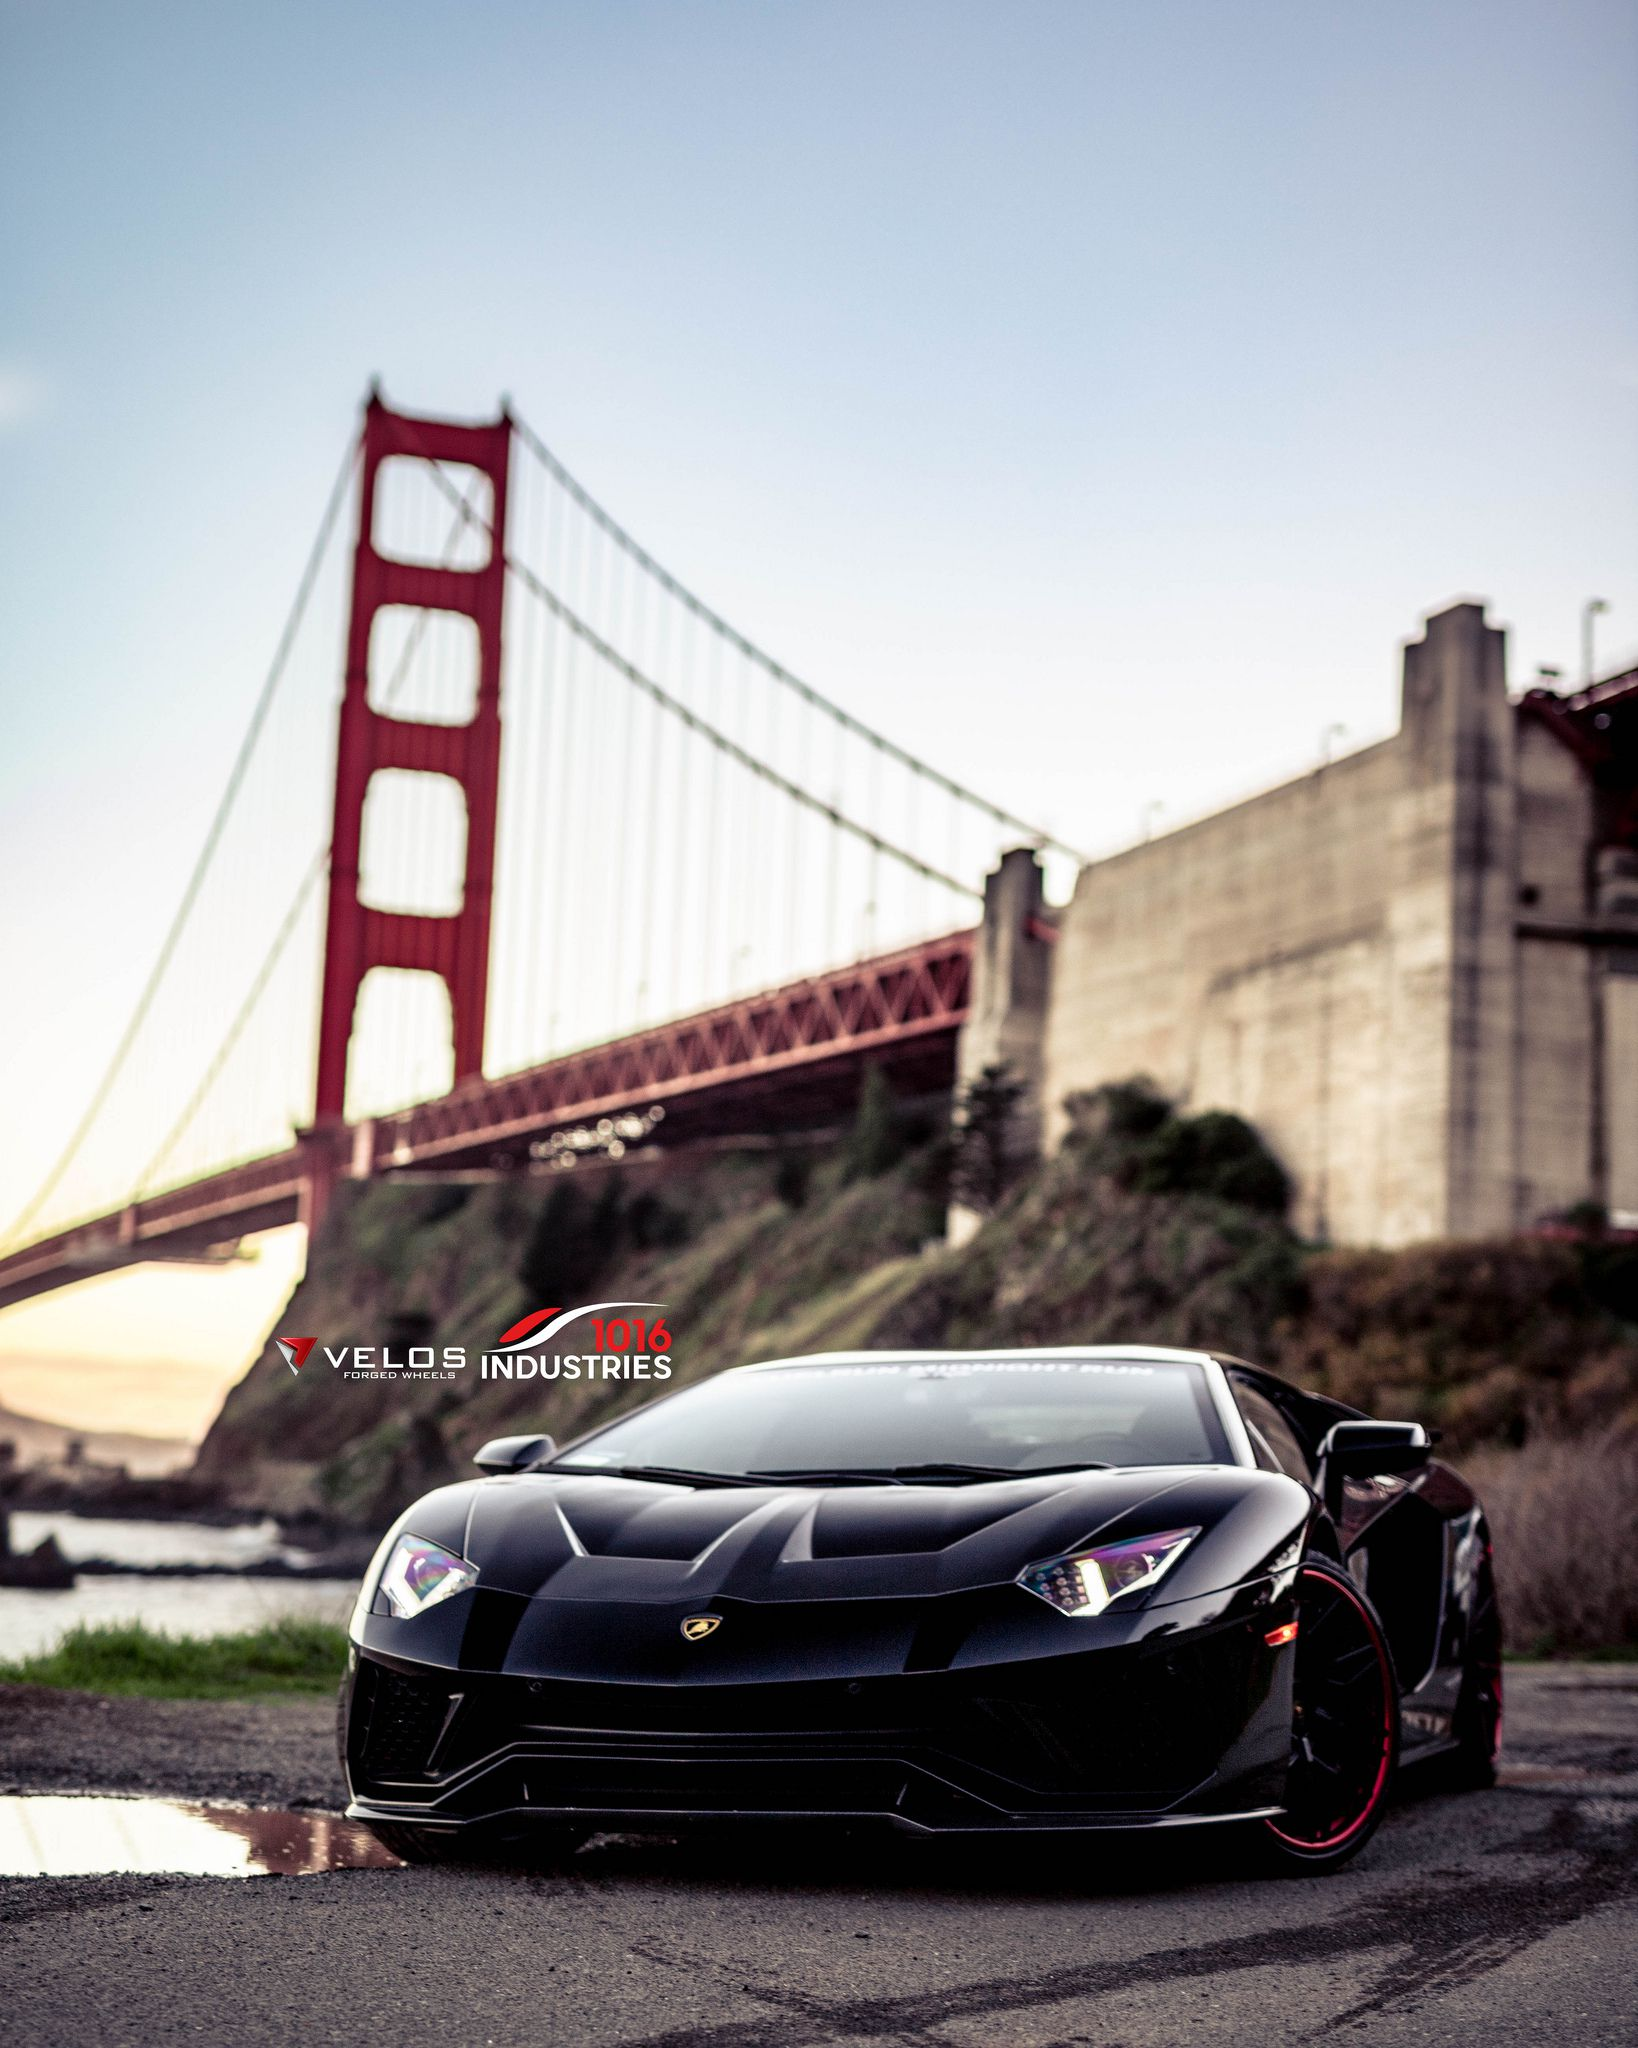 Lamborghini Aventador S, black, at bridge background, Sports car